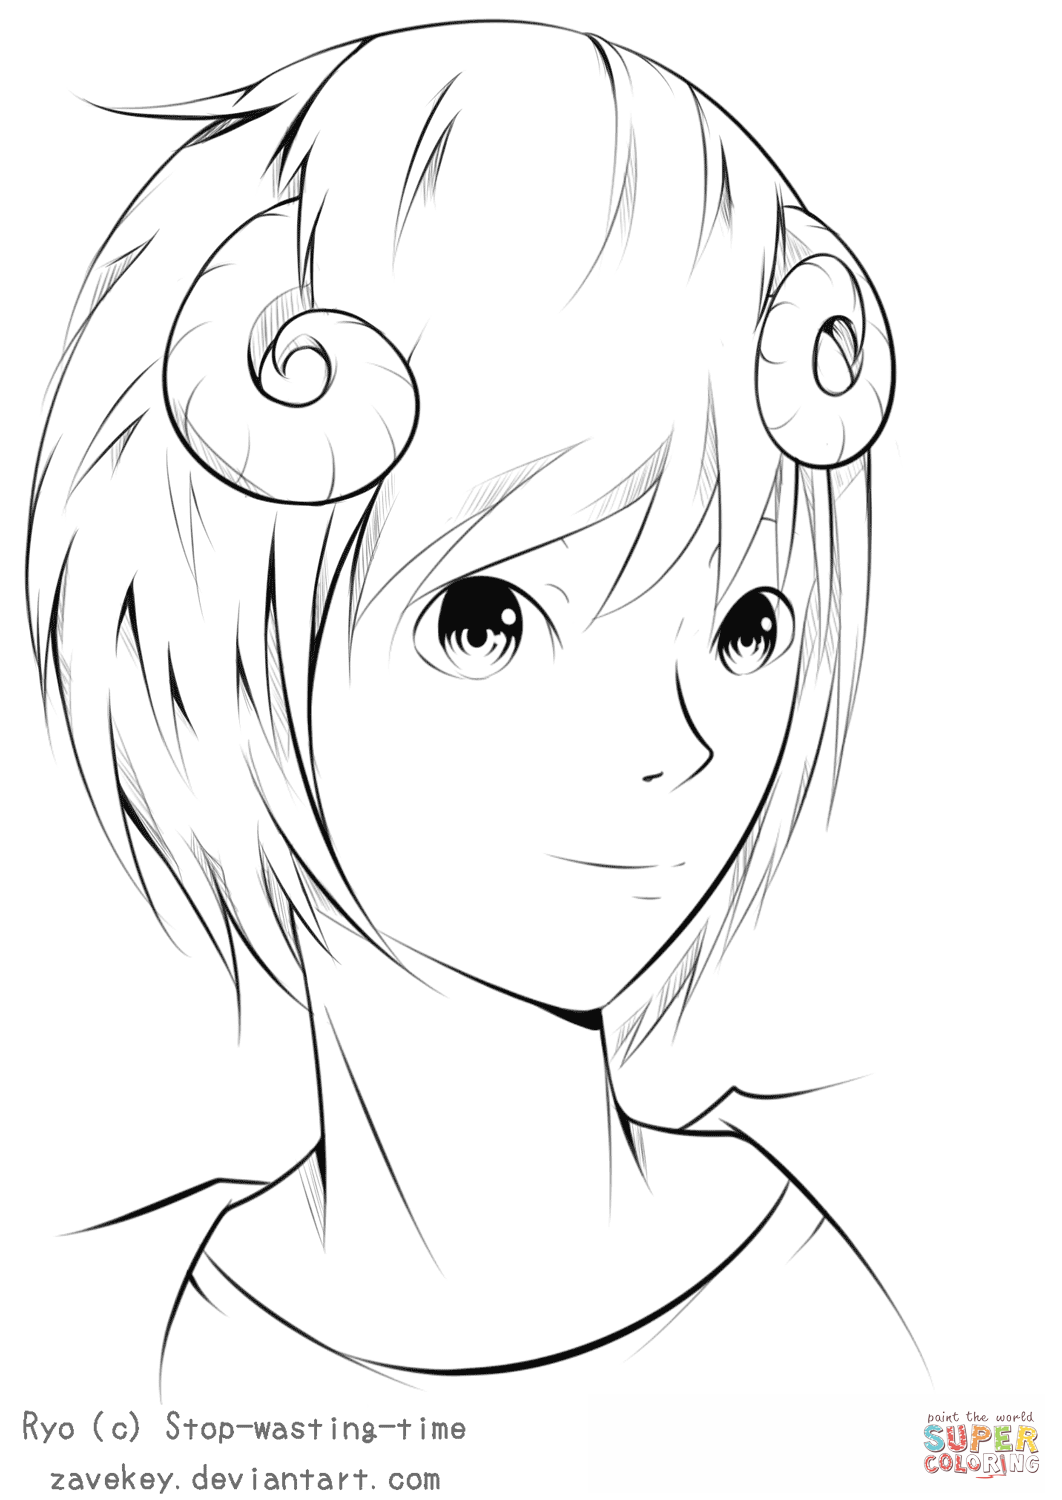 Ryo Anime Boy By ZaveKey Coloring Page Free Printable